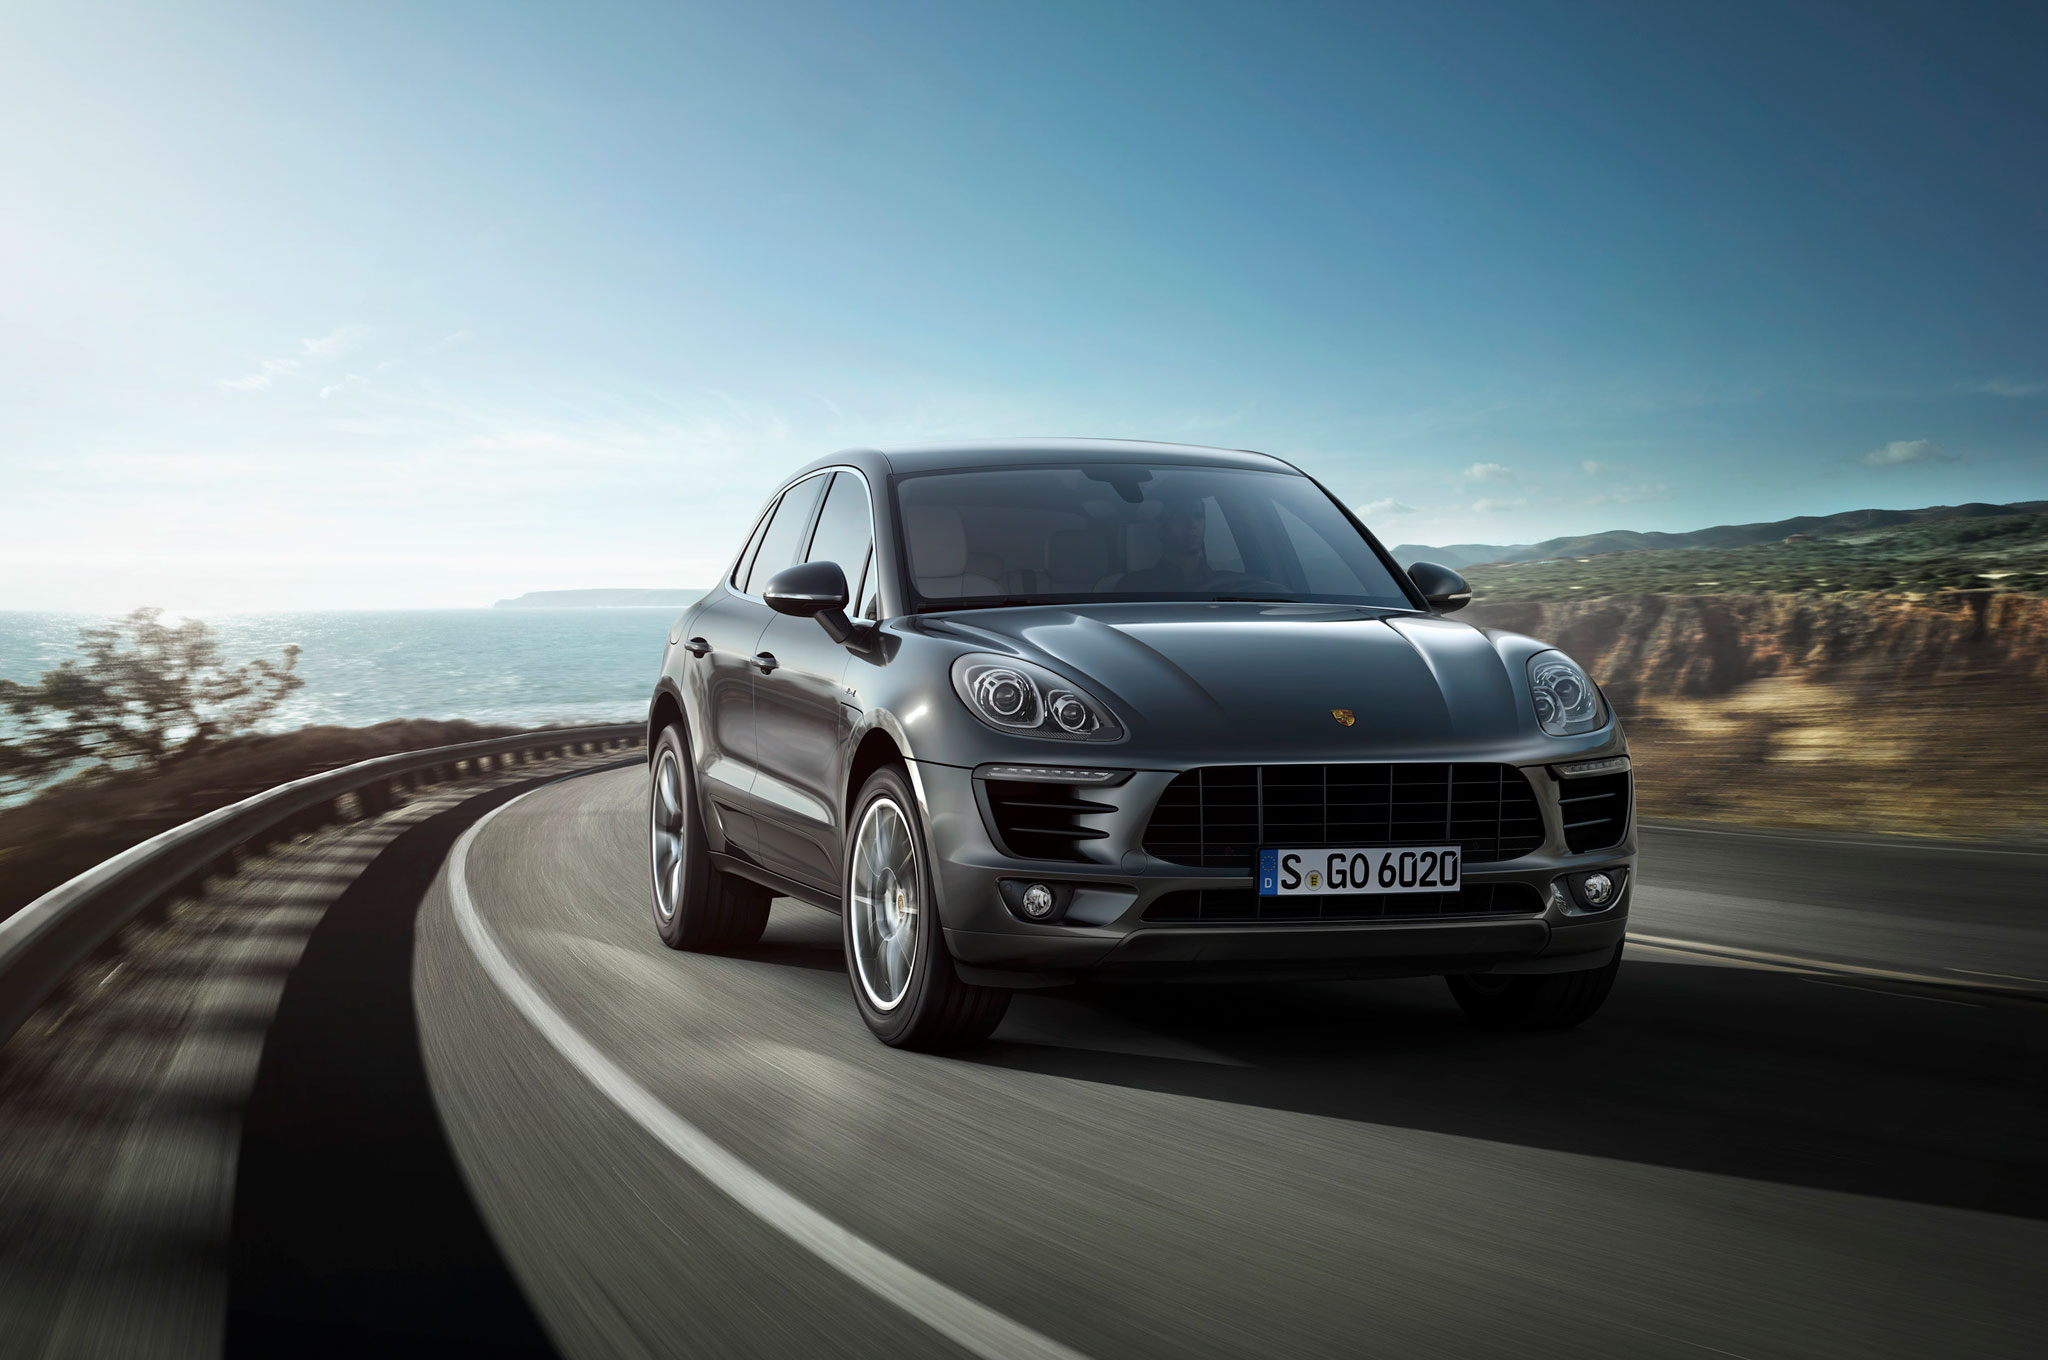 2015 Porsche Macan Front End In Motion 021